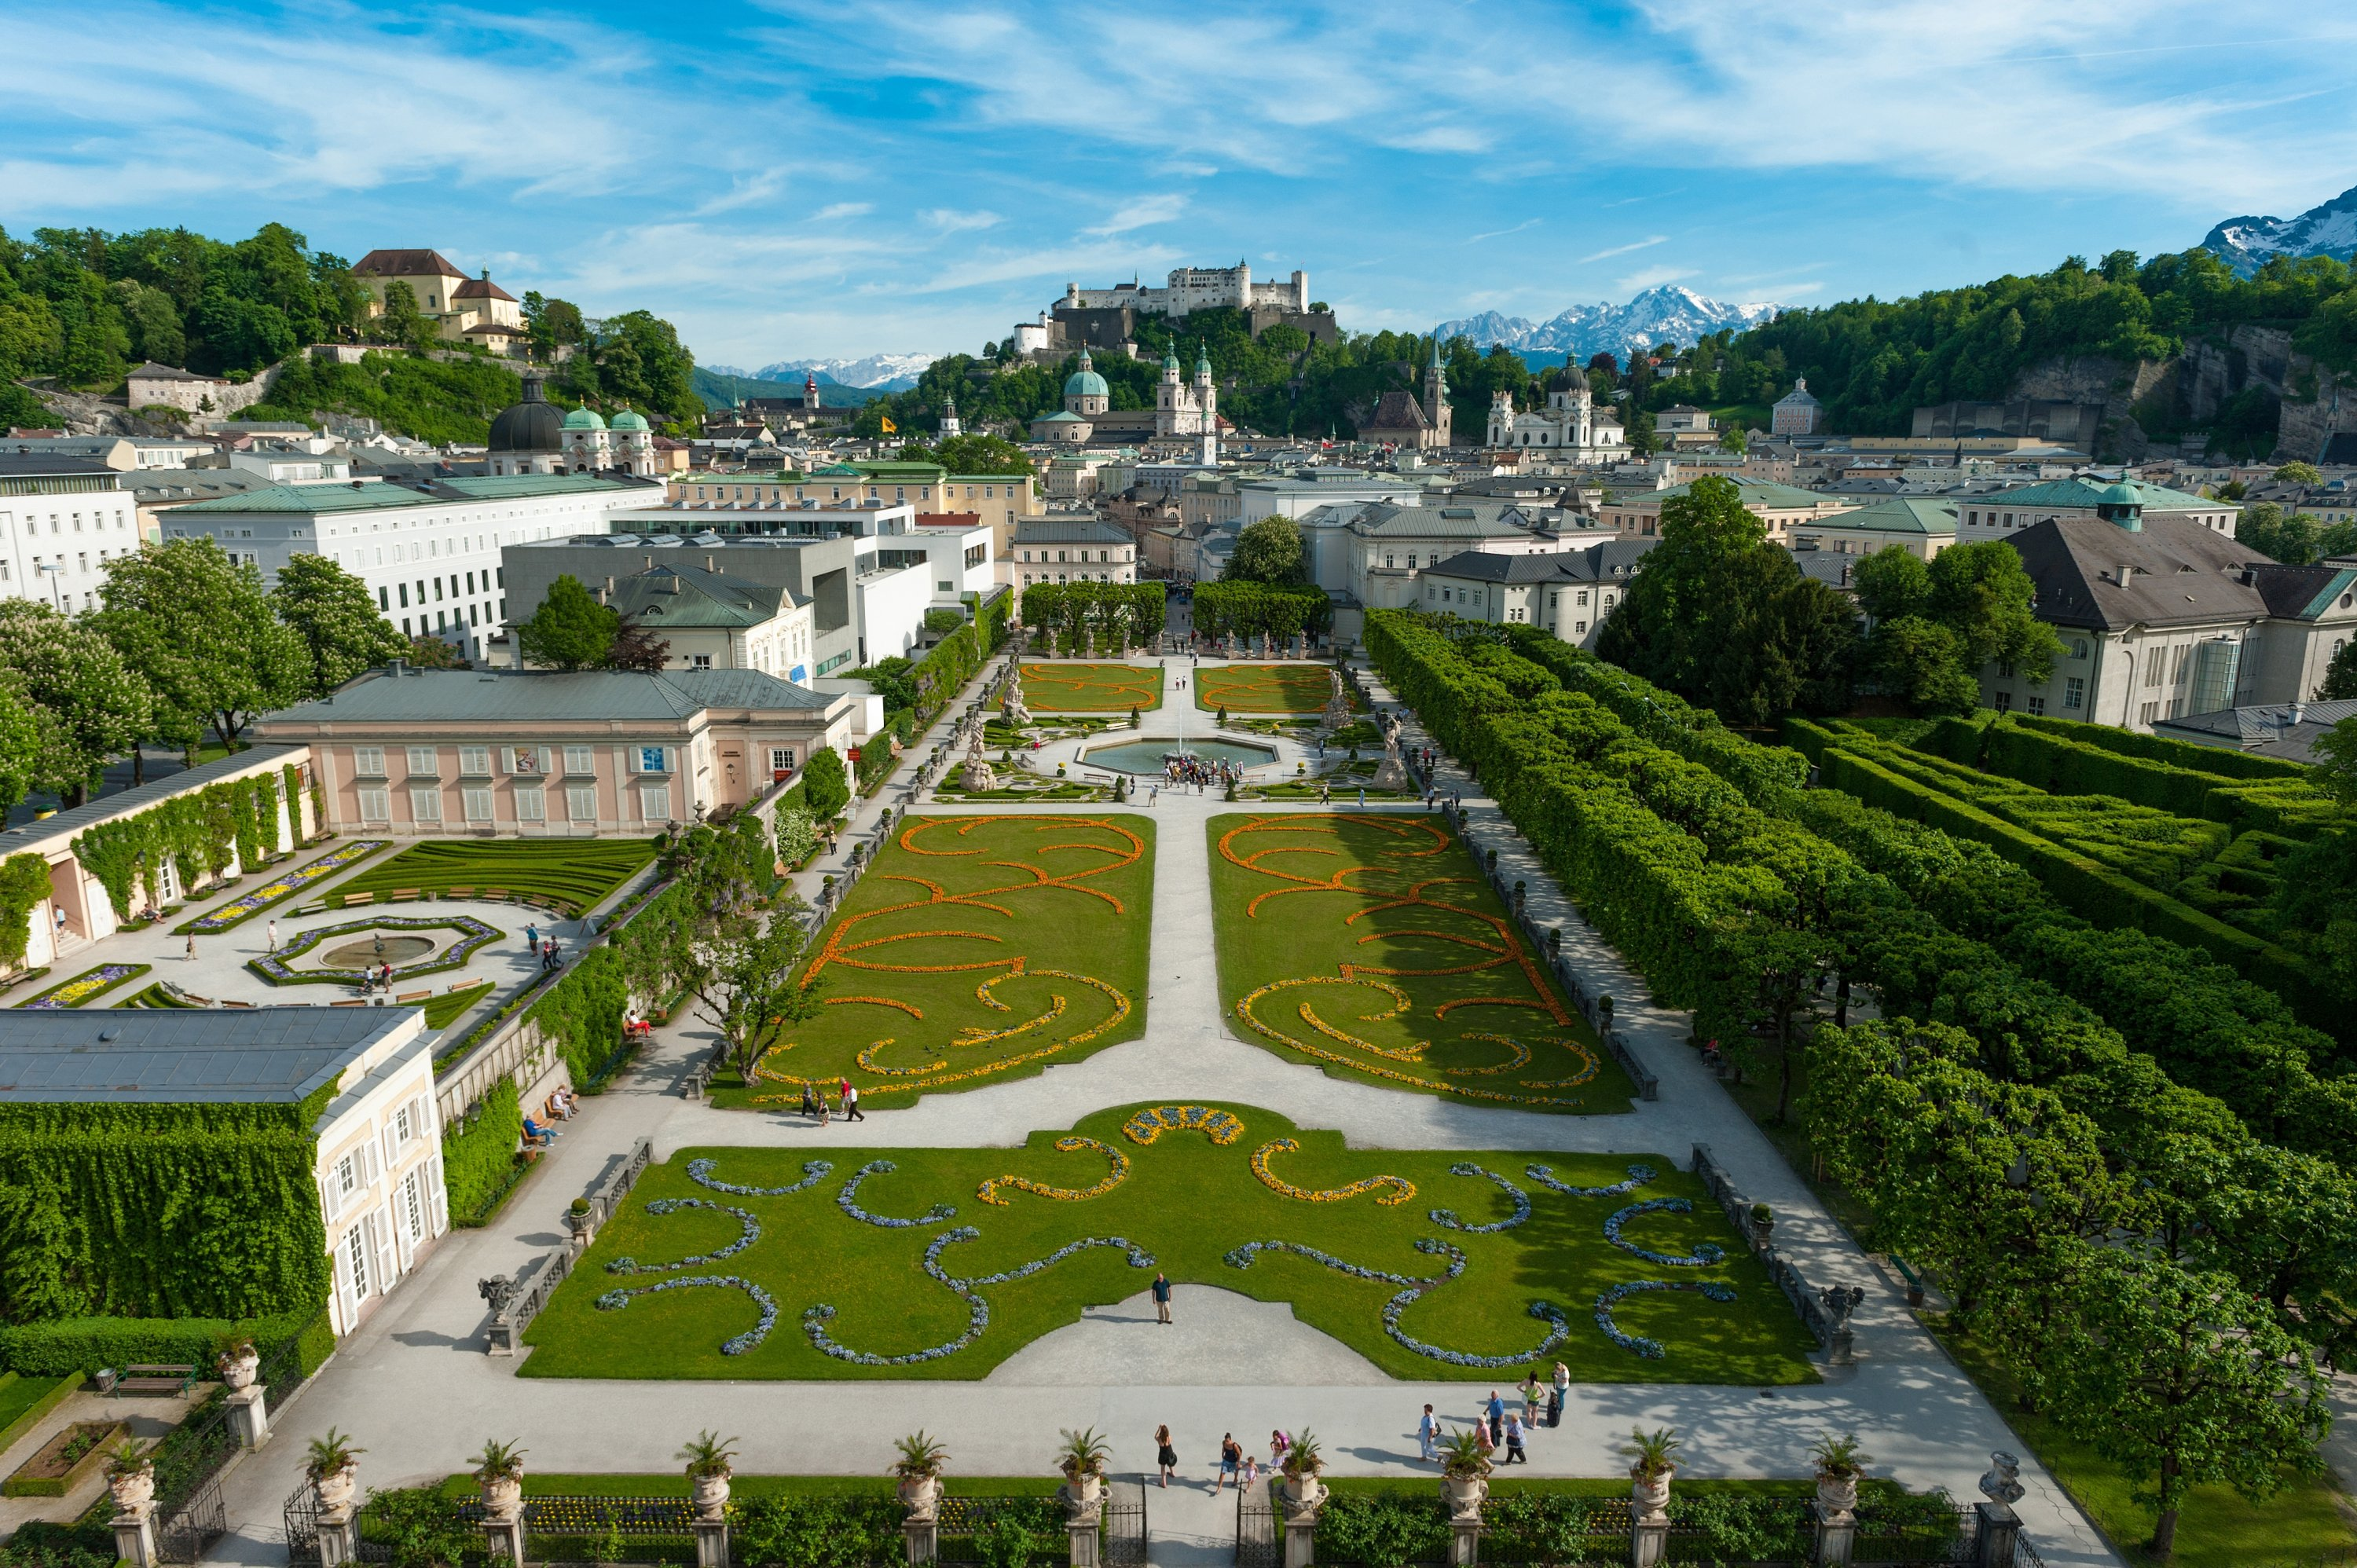 The Mirabell Gardens are one of the most popular sights in Salzburg. (G.Breitegger/Tourismus Salzburg GmbH/dpa Photo)